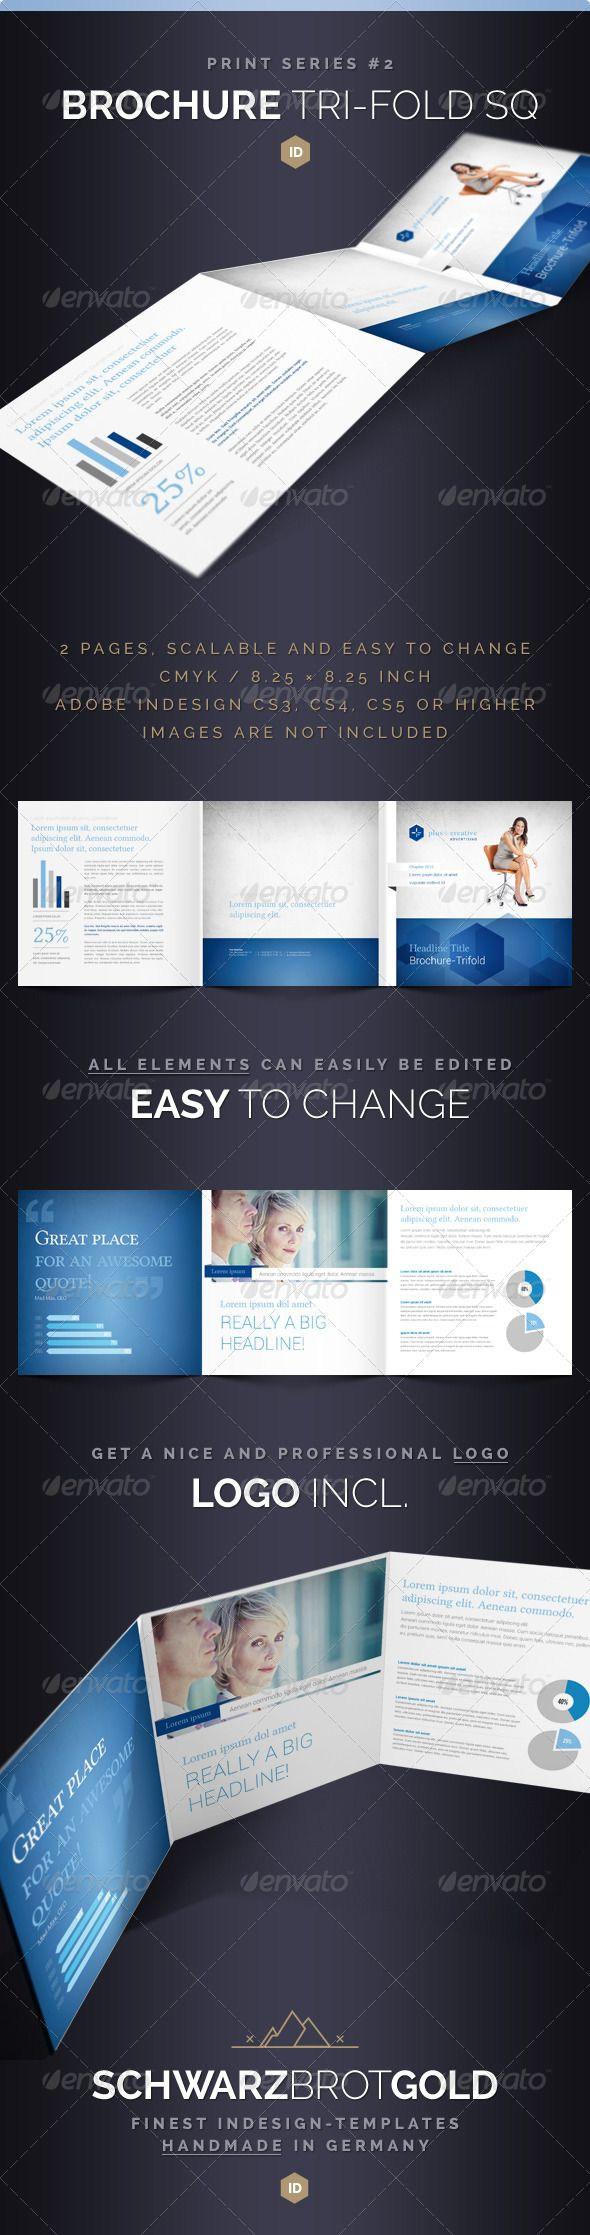 multi page brochure template free - 17 best images about print templates on pinterest fonts